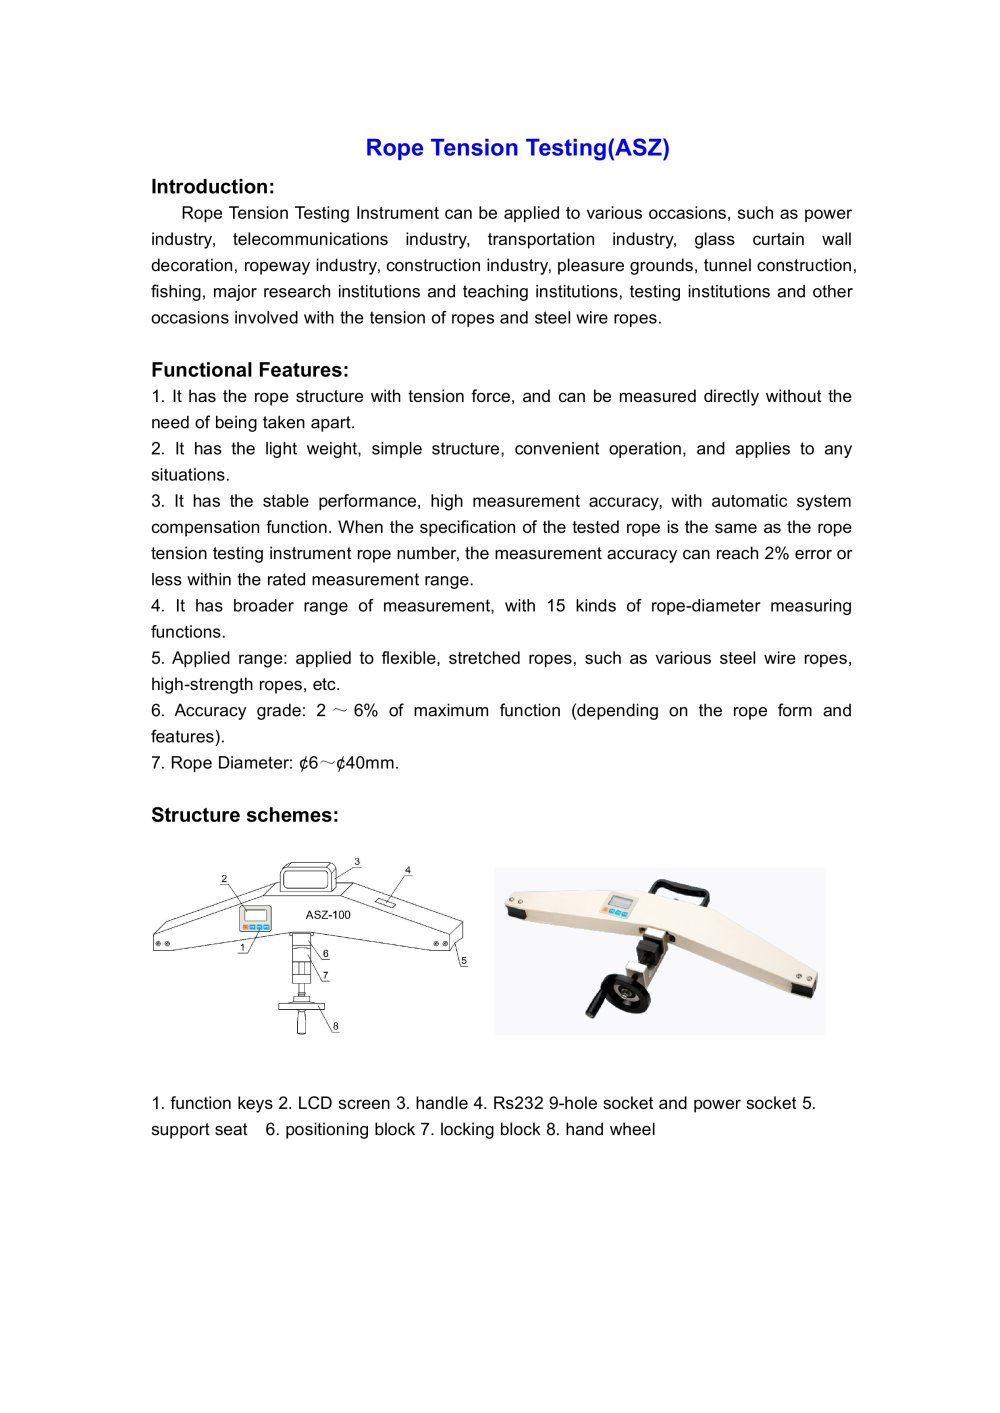 ASZ Rope Tension Tester for Lab use | Wenzhou Tripod instrument ...